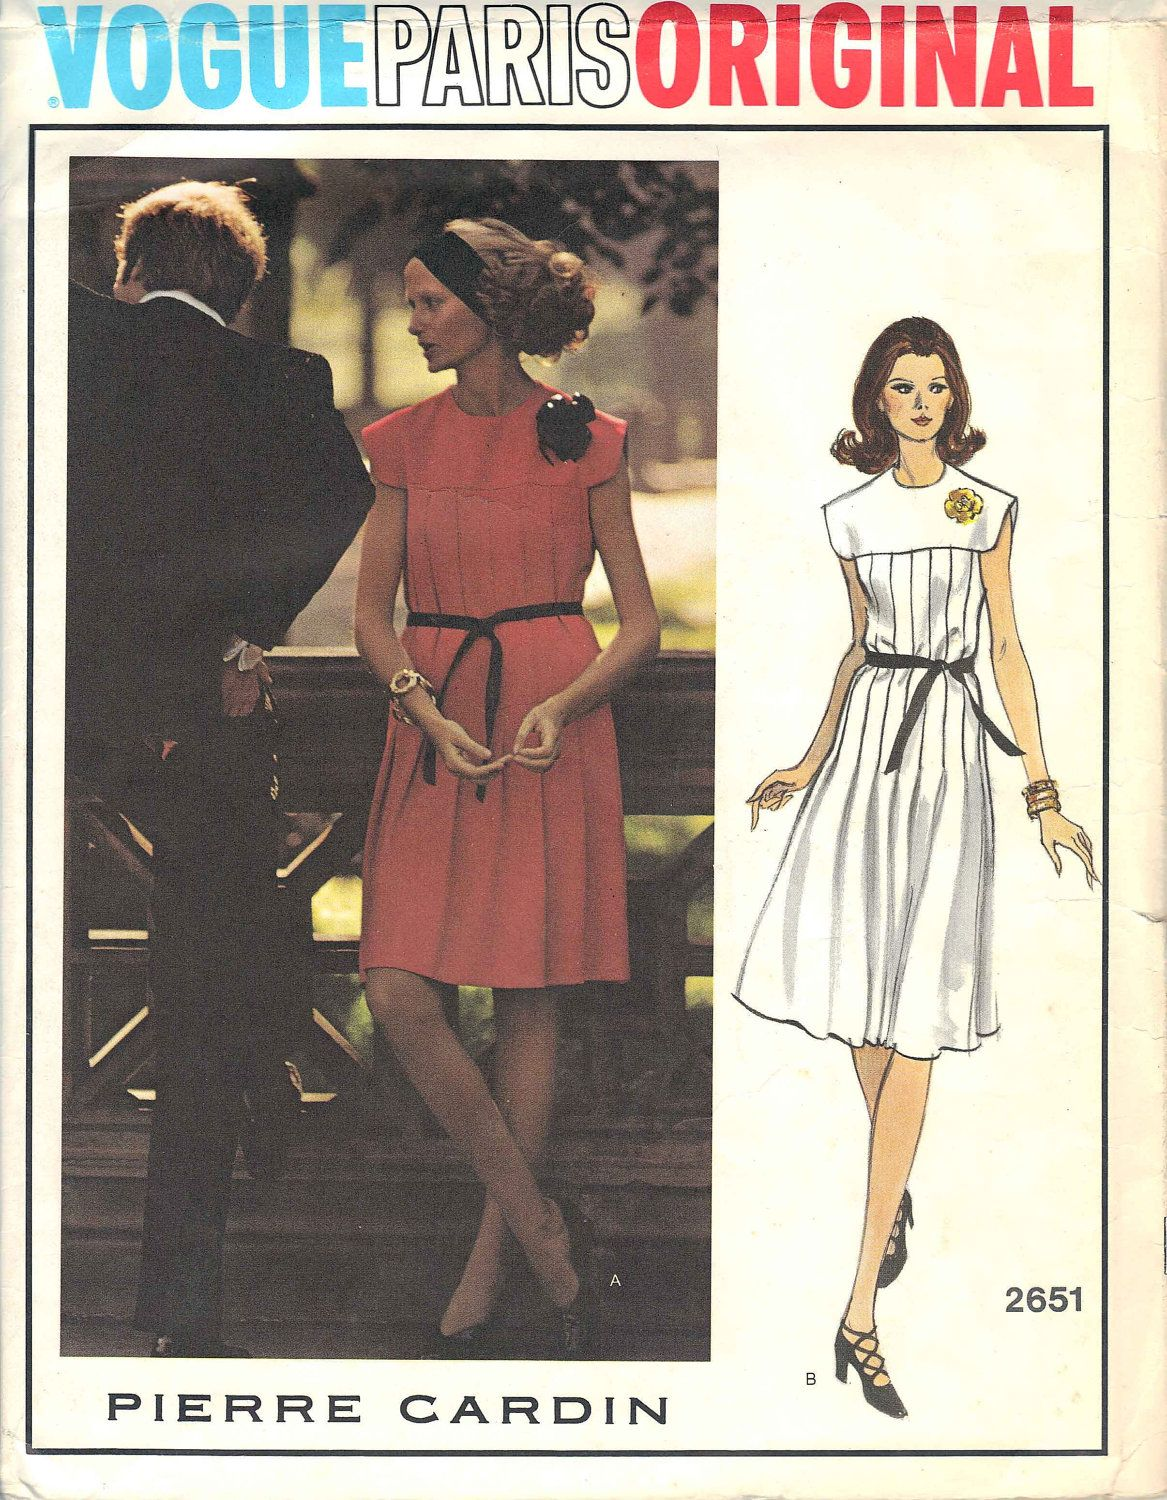 Vintage Pierre Cardin Vogue Paris Original Uncut Sewing Dress ...